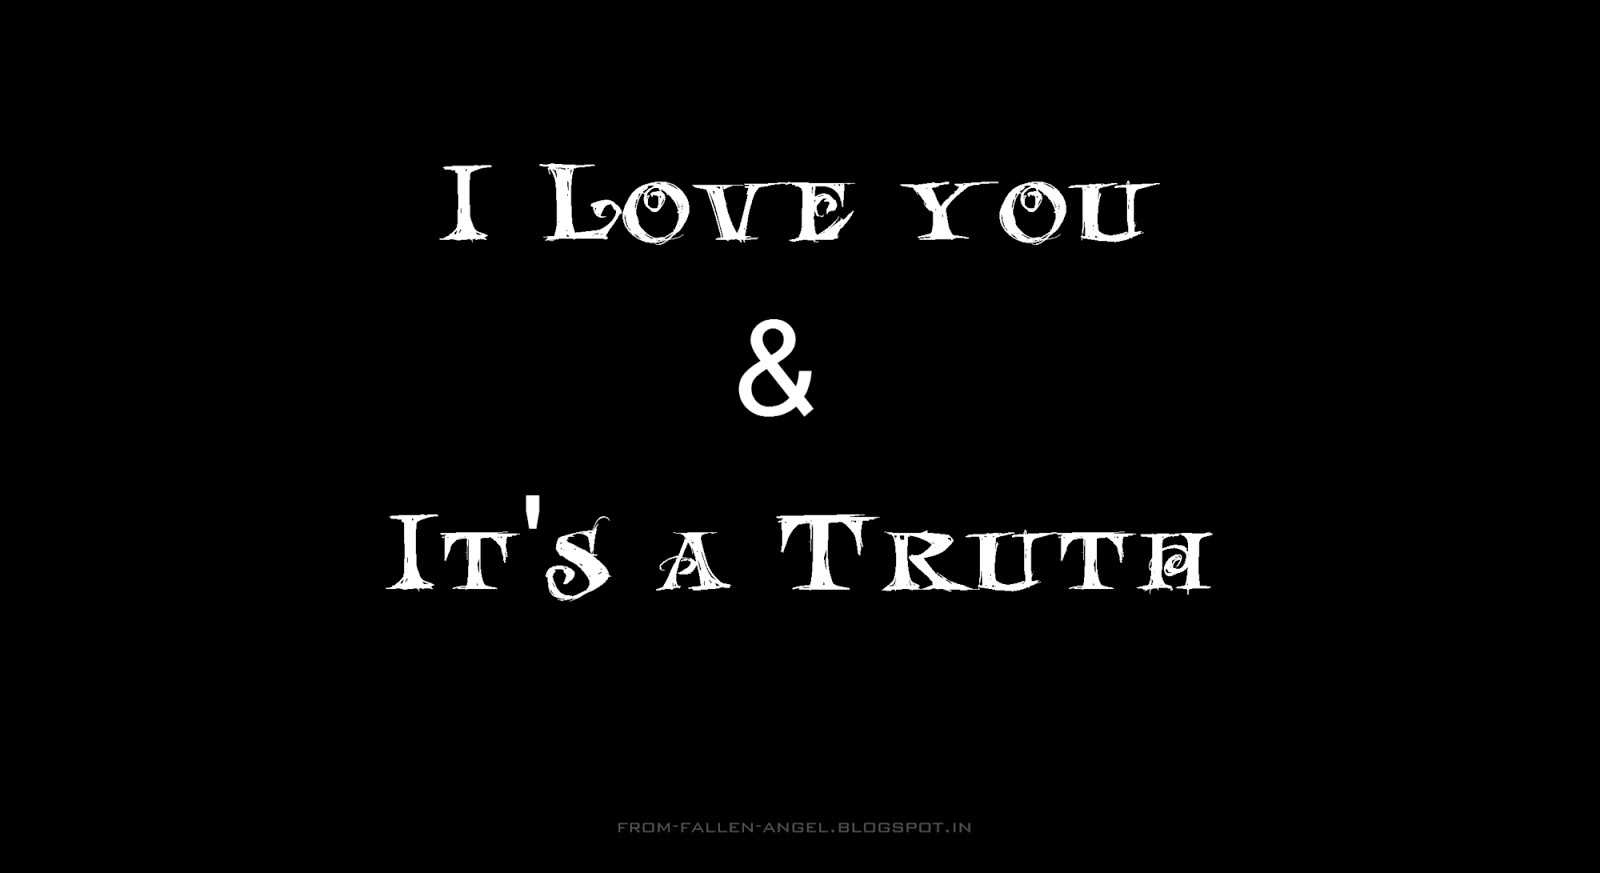 I love you & It's a truth